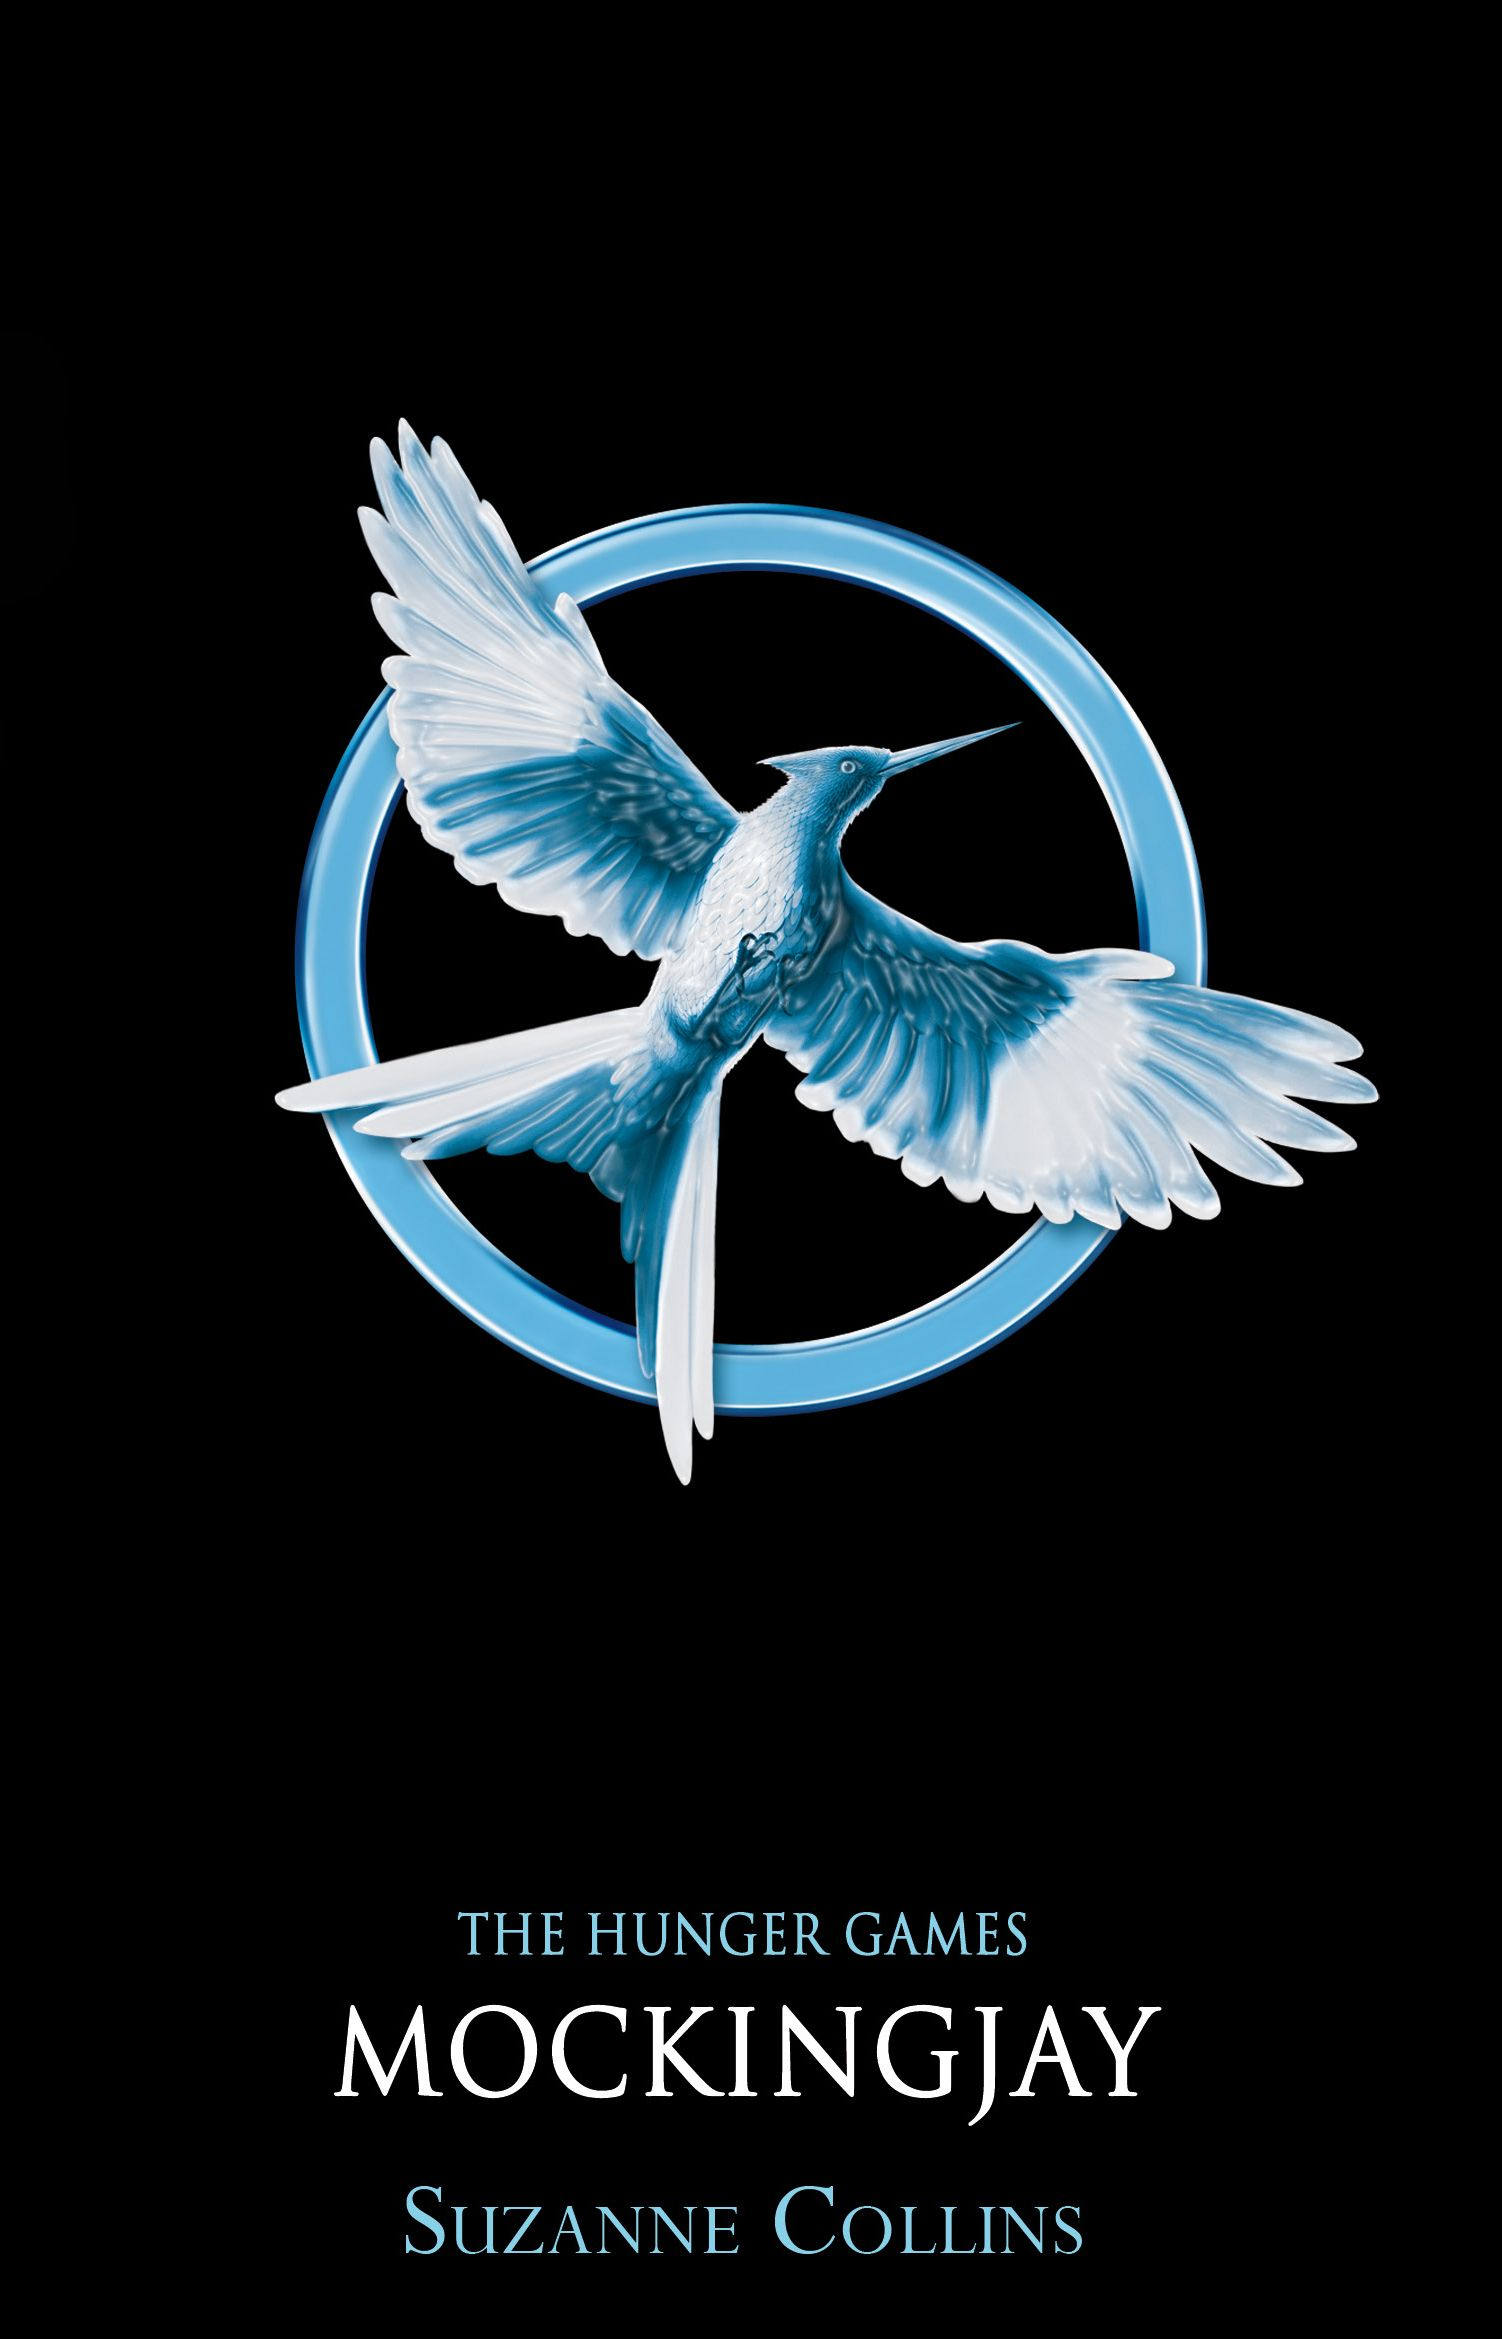 Suzanne collins mockingjay the hunger games 3 hunger games suzanne collins mockingjay the hunger games 3 fandeluxe Choice Image